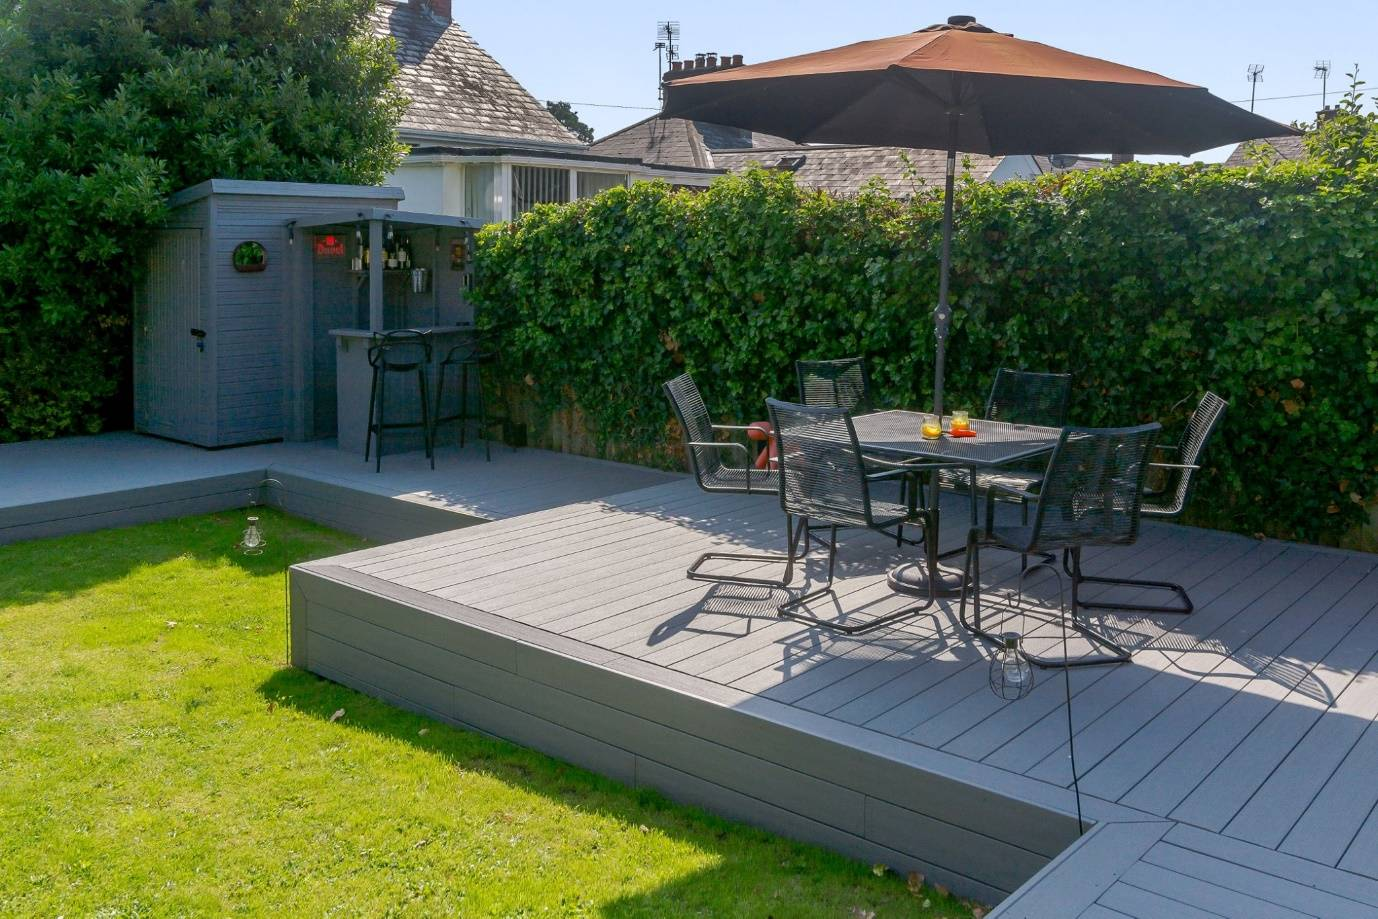 Does Composite Decking Increase the Value of Your Home & Garden?